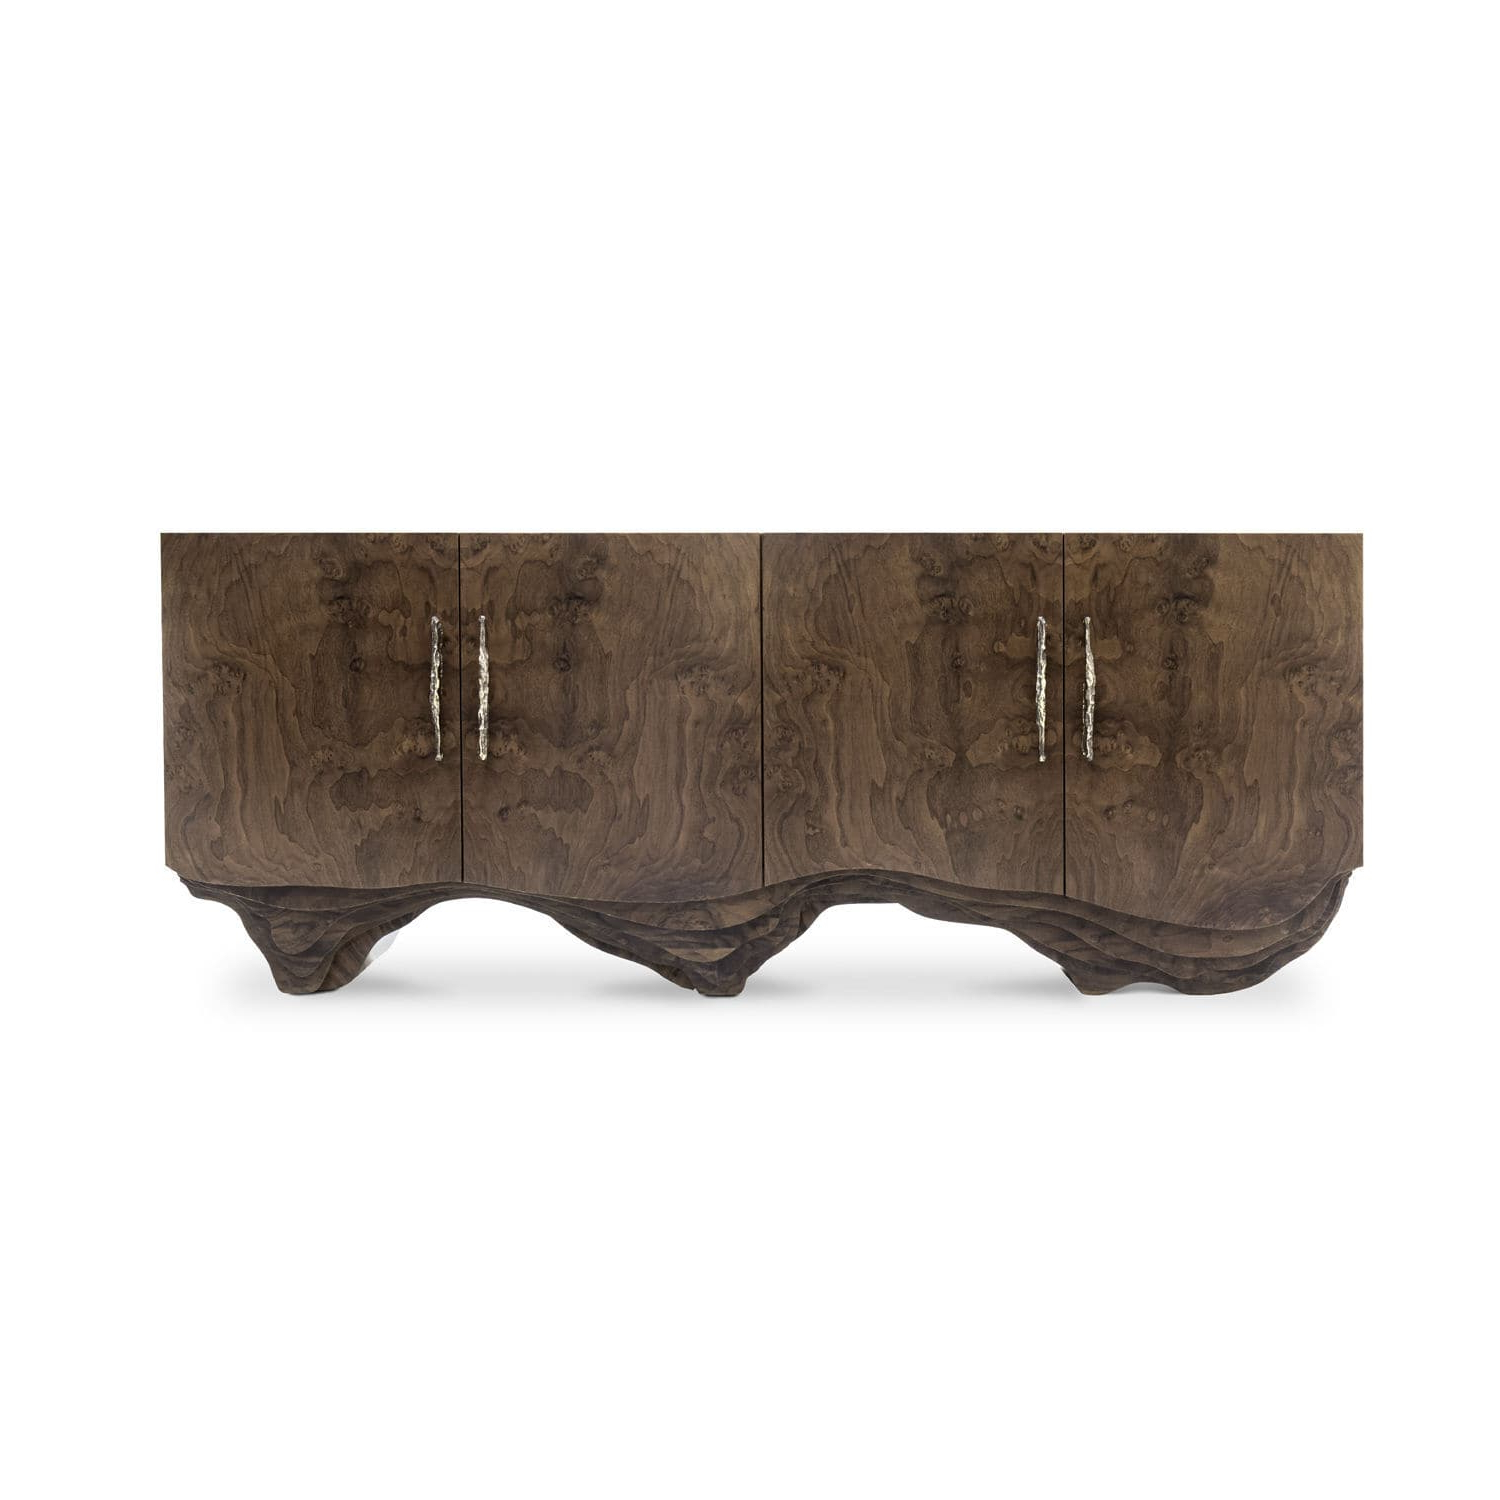 Aged Brass Sideboards Inside Most Up To Date Contemporary Sideboard / Walnut / Wood Veneer / Polished Brass (View 2 of 20)